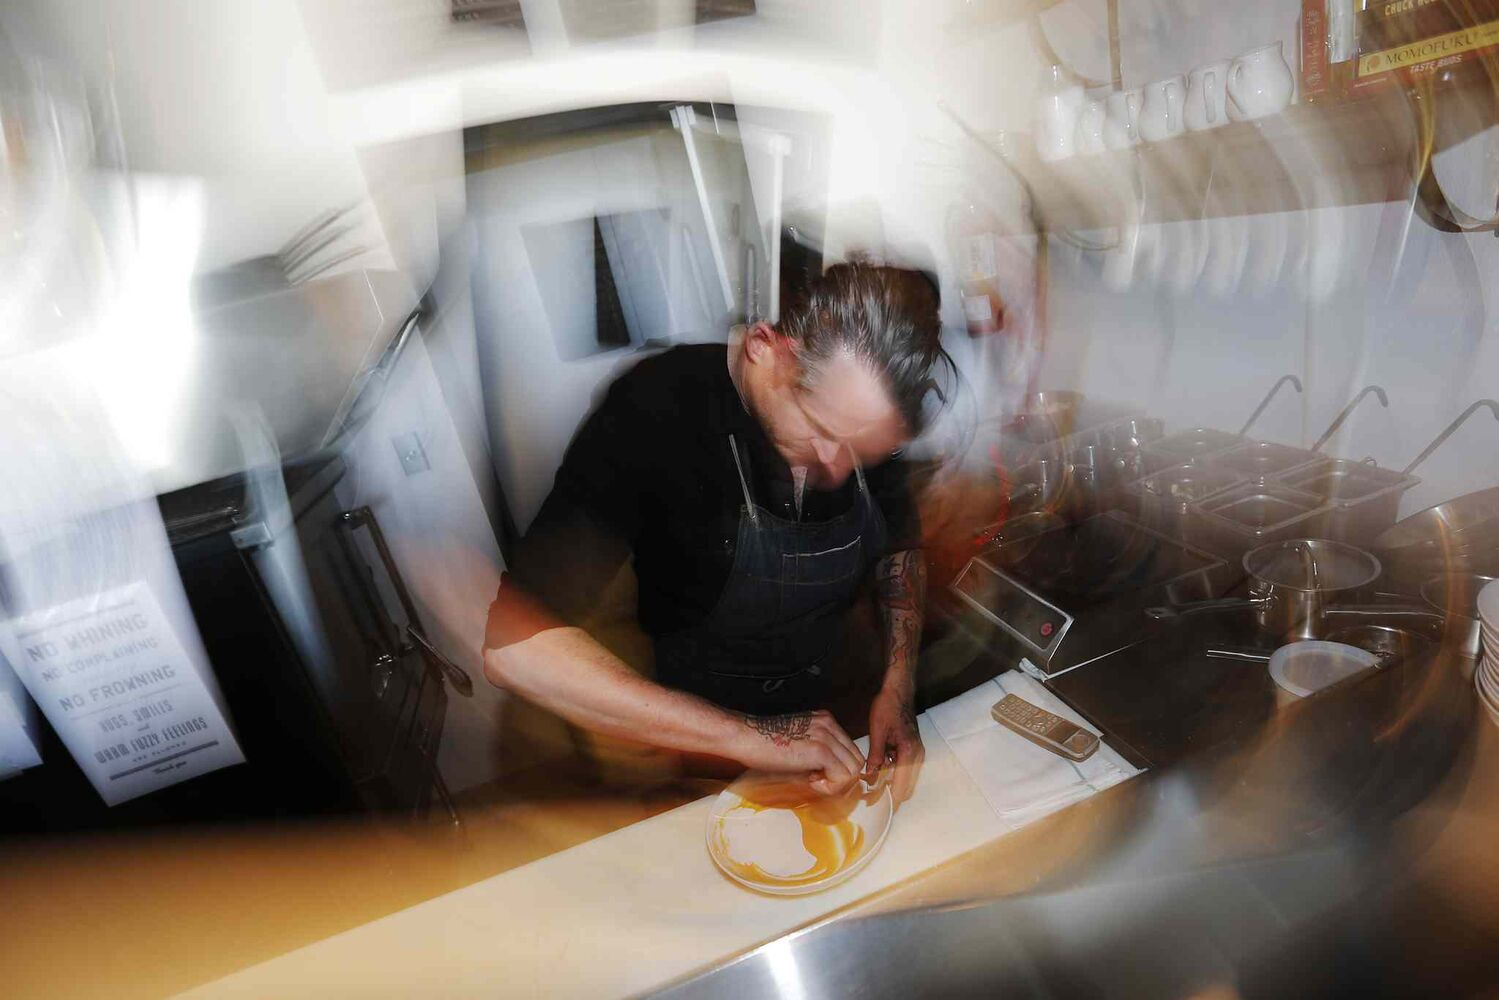 Scott Bagshaw, owner of Enoteca, in the kitchen of his new restaurant . (JOHN WOODS / WINNIPEG FREE PRESS)